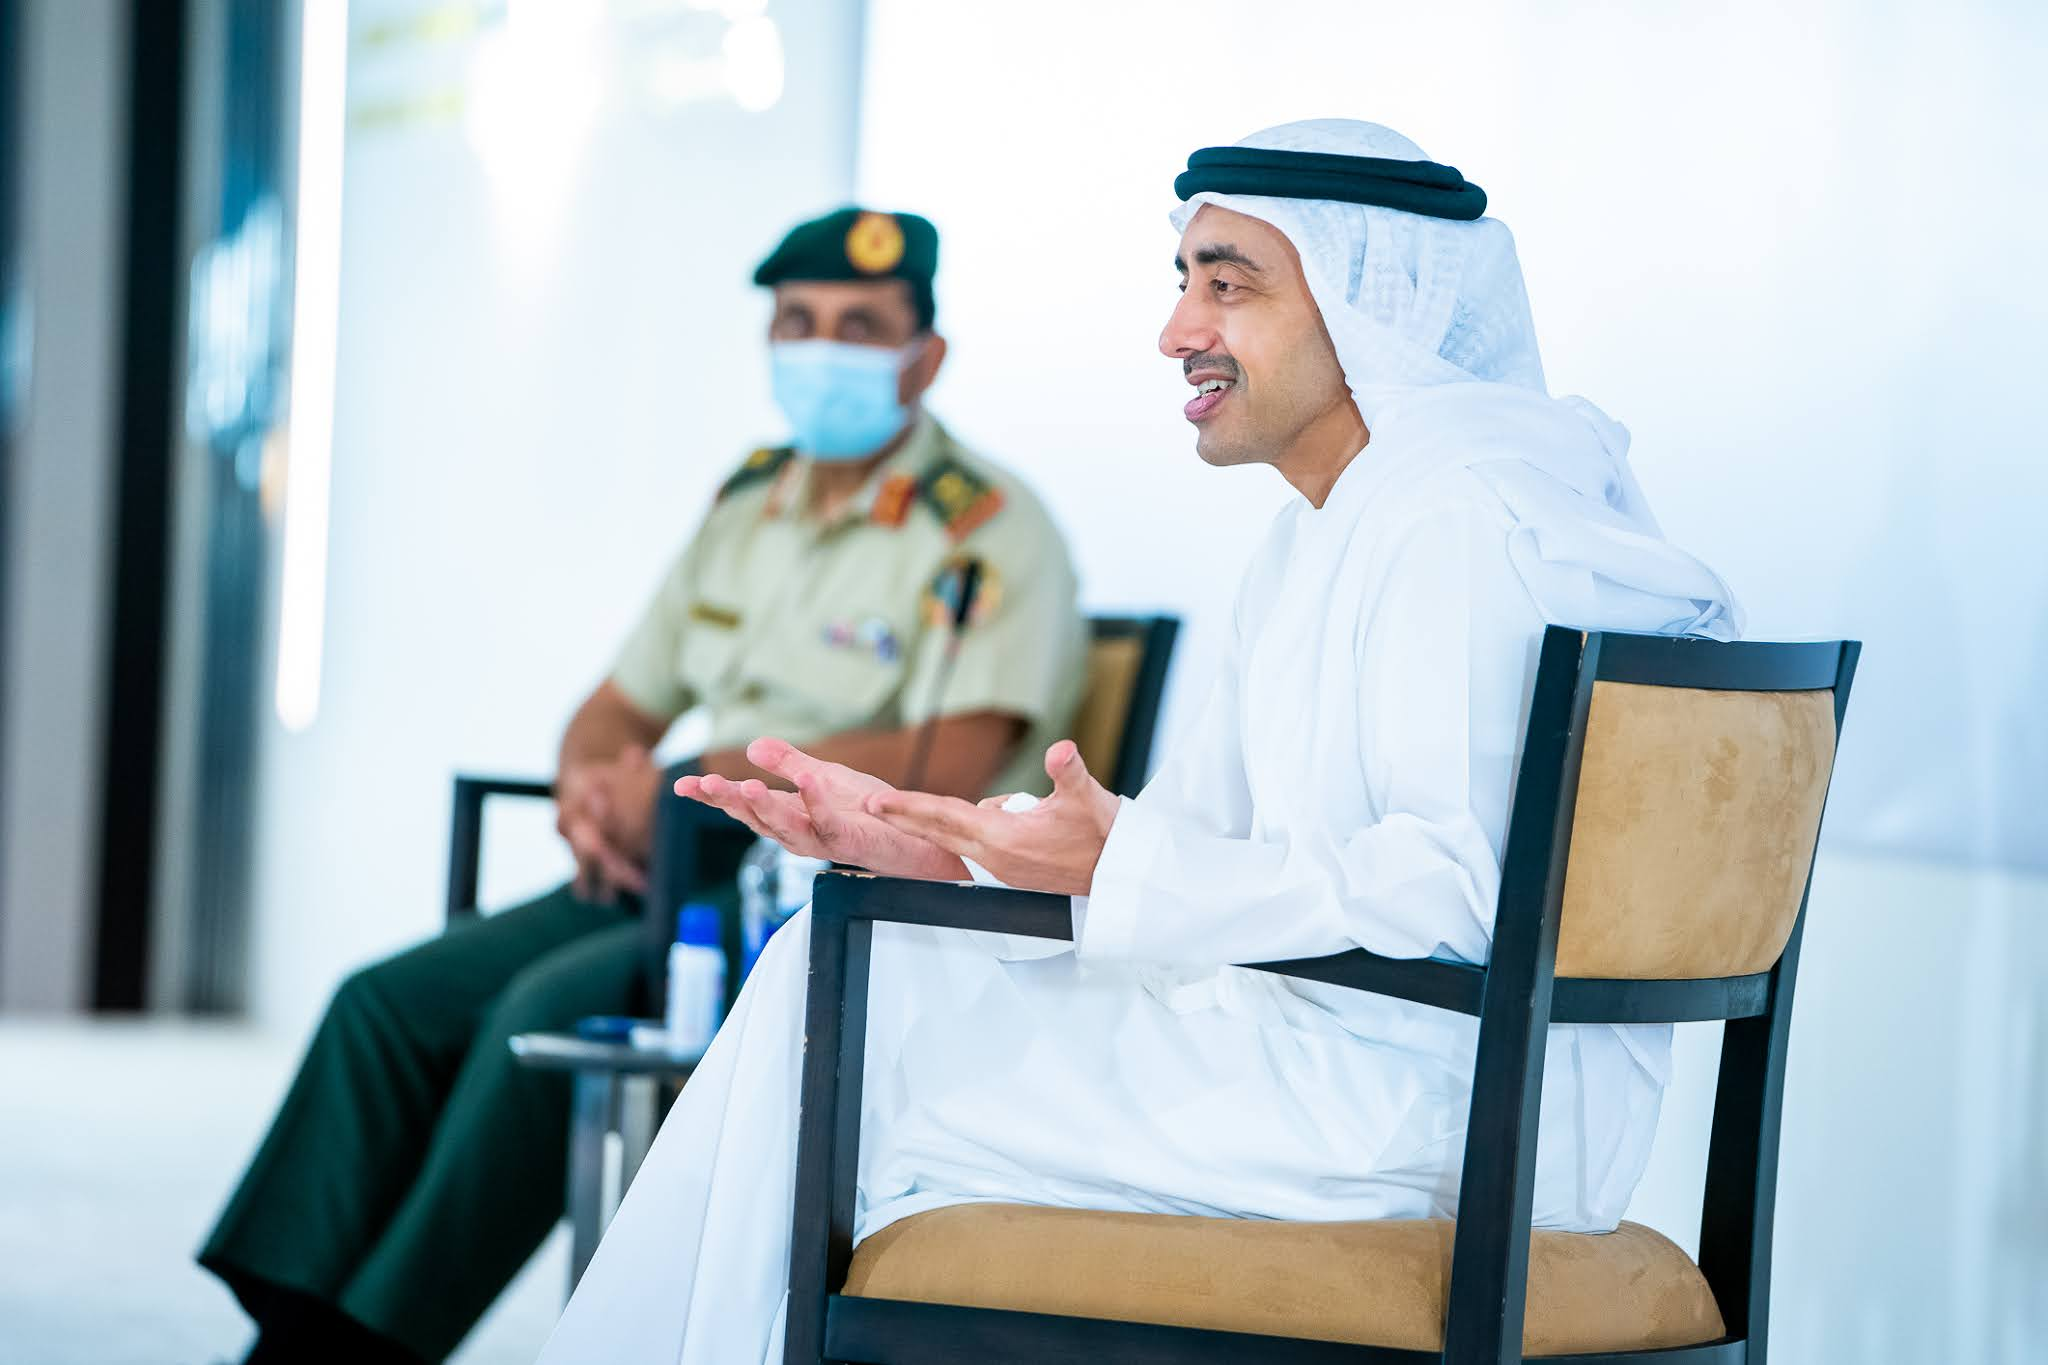 Sheikh Abdullah meets students of National Defence College